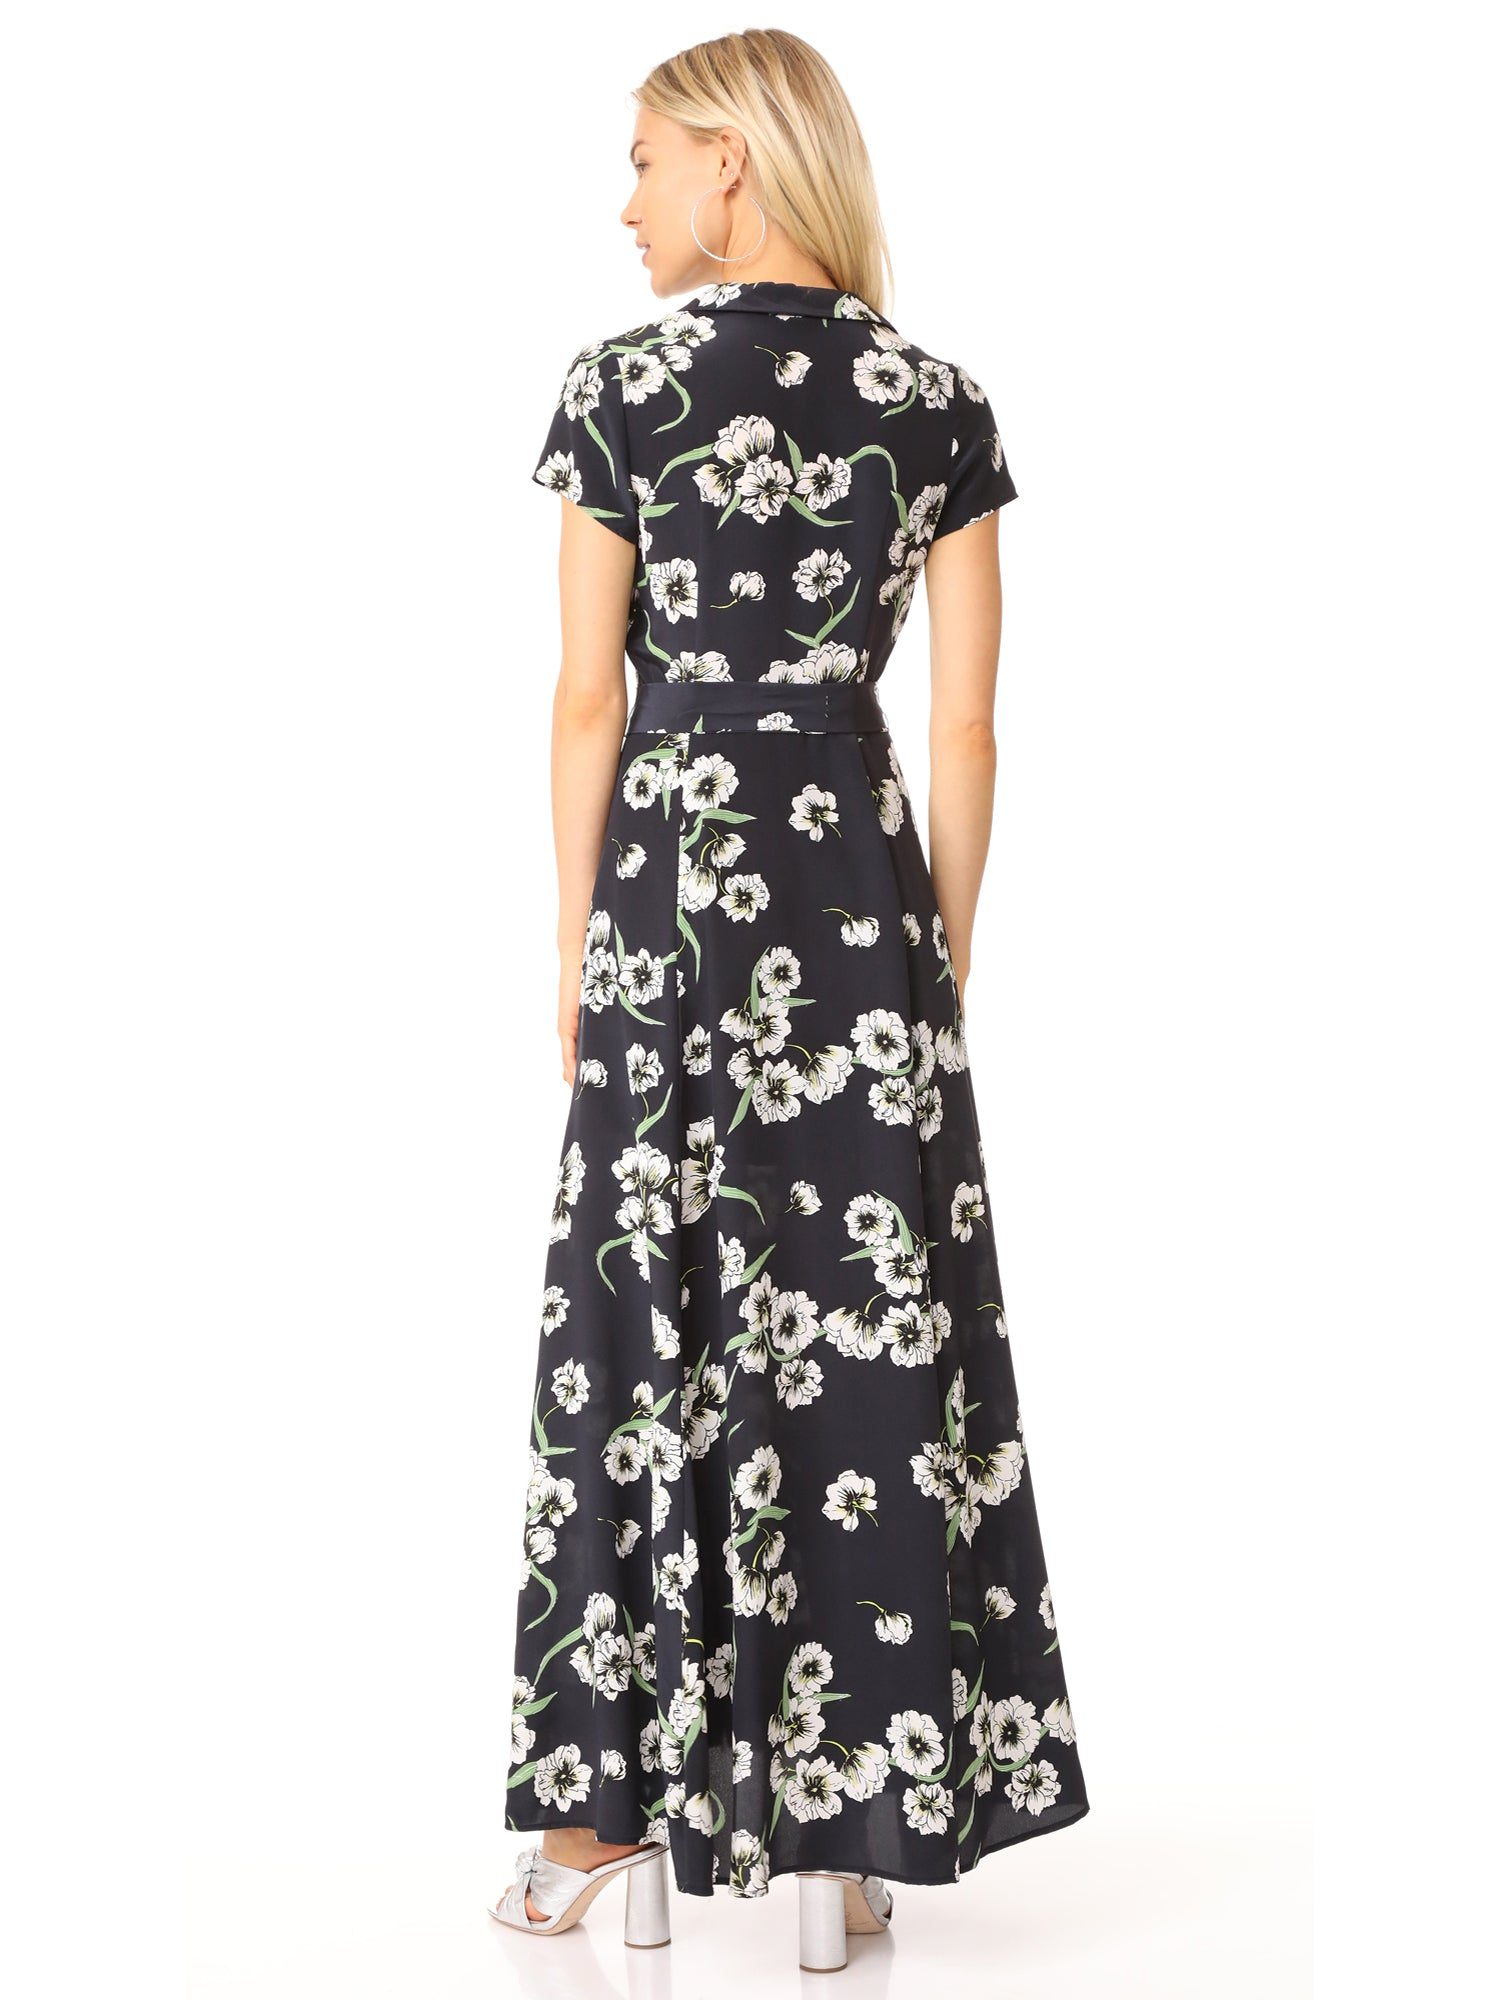 Yumi Kim Riviera Silk Maxi Dress Heirloom Black Floral Print | TILDEN